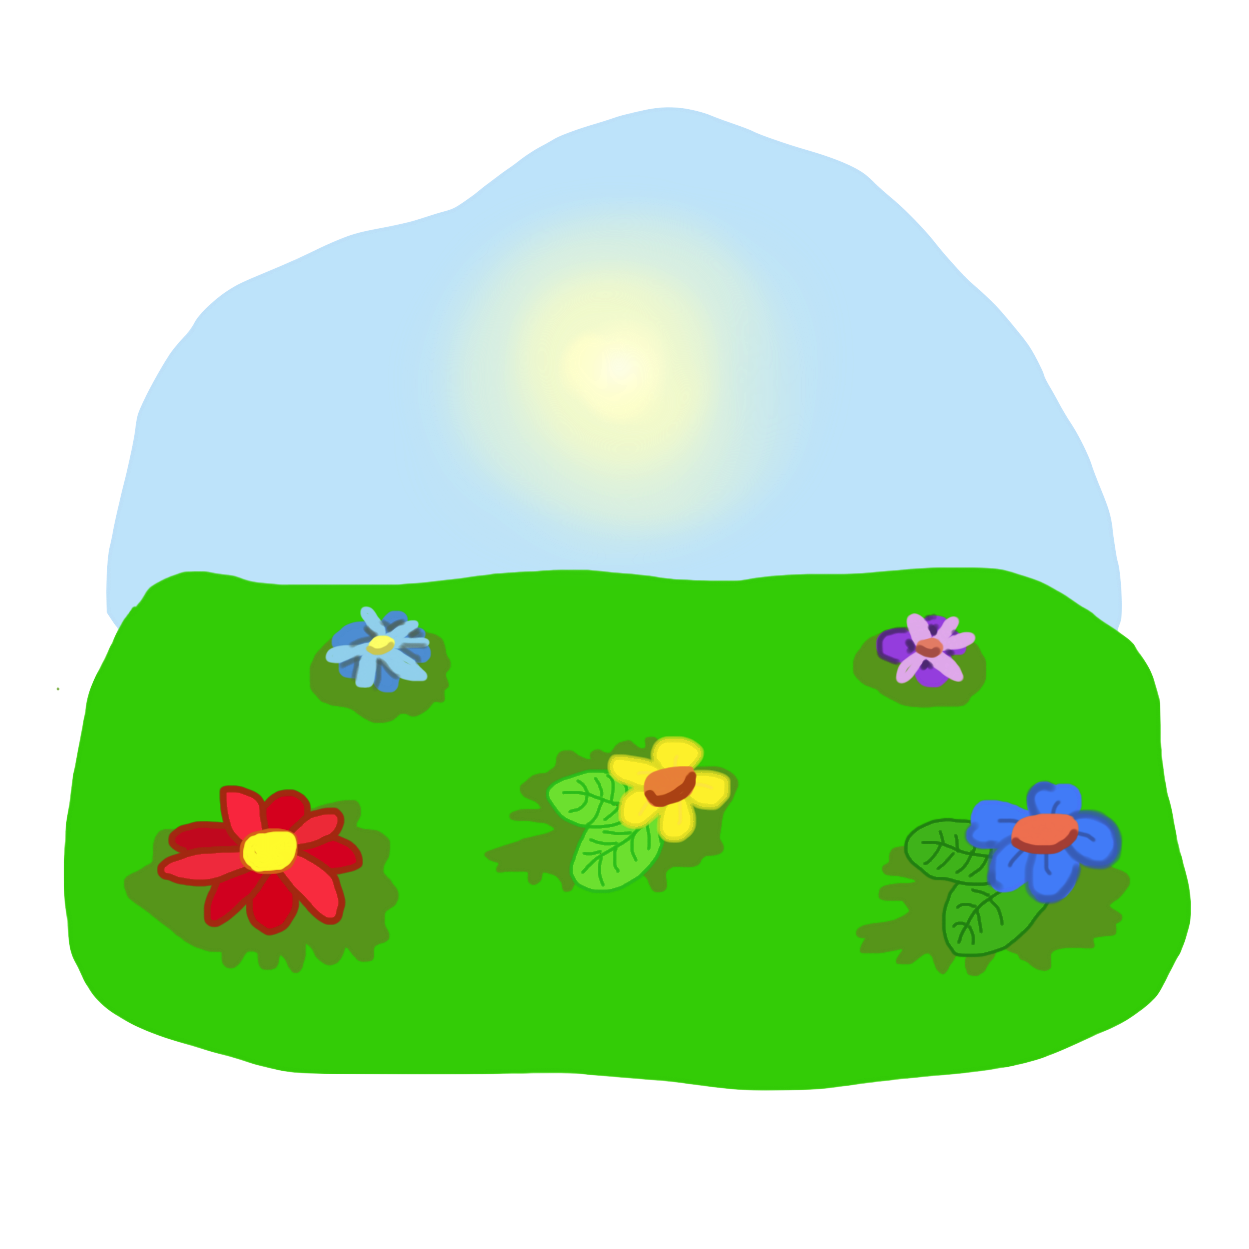 Zoo clipart landscape. Track and field set